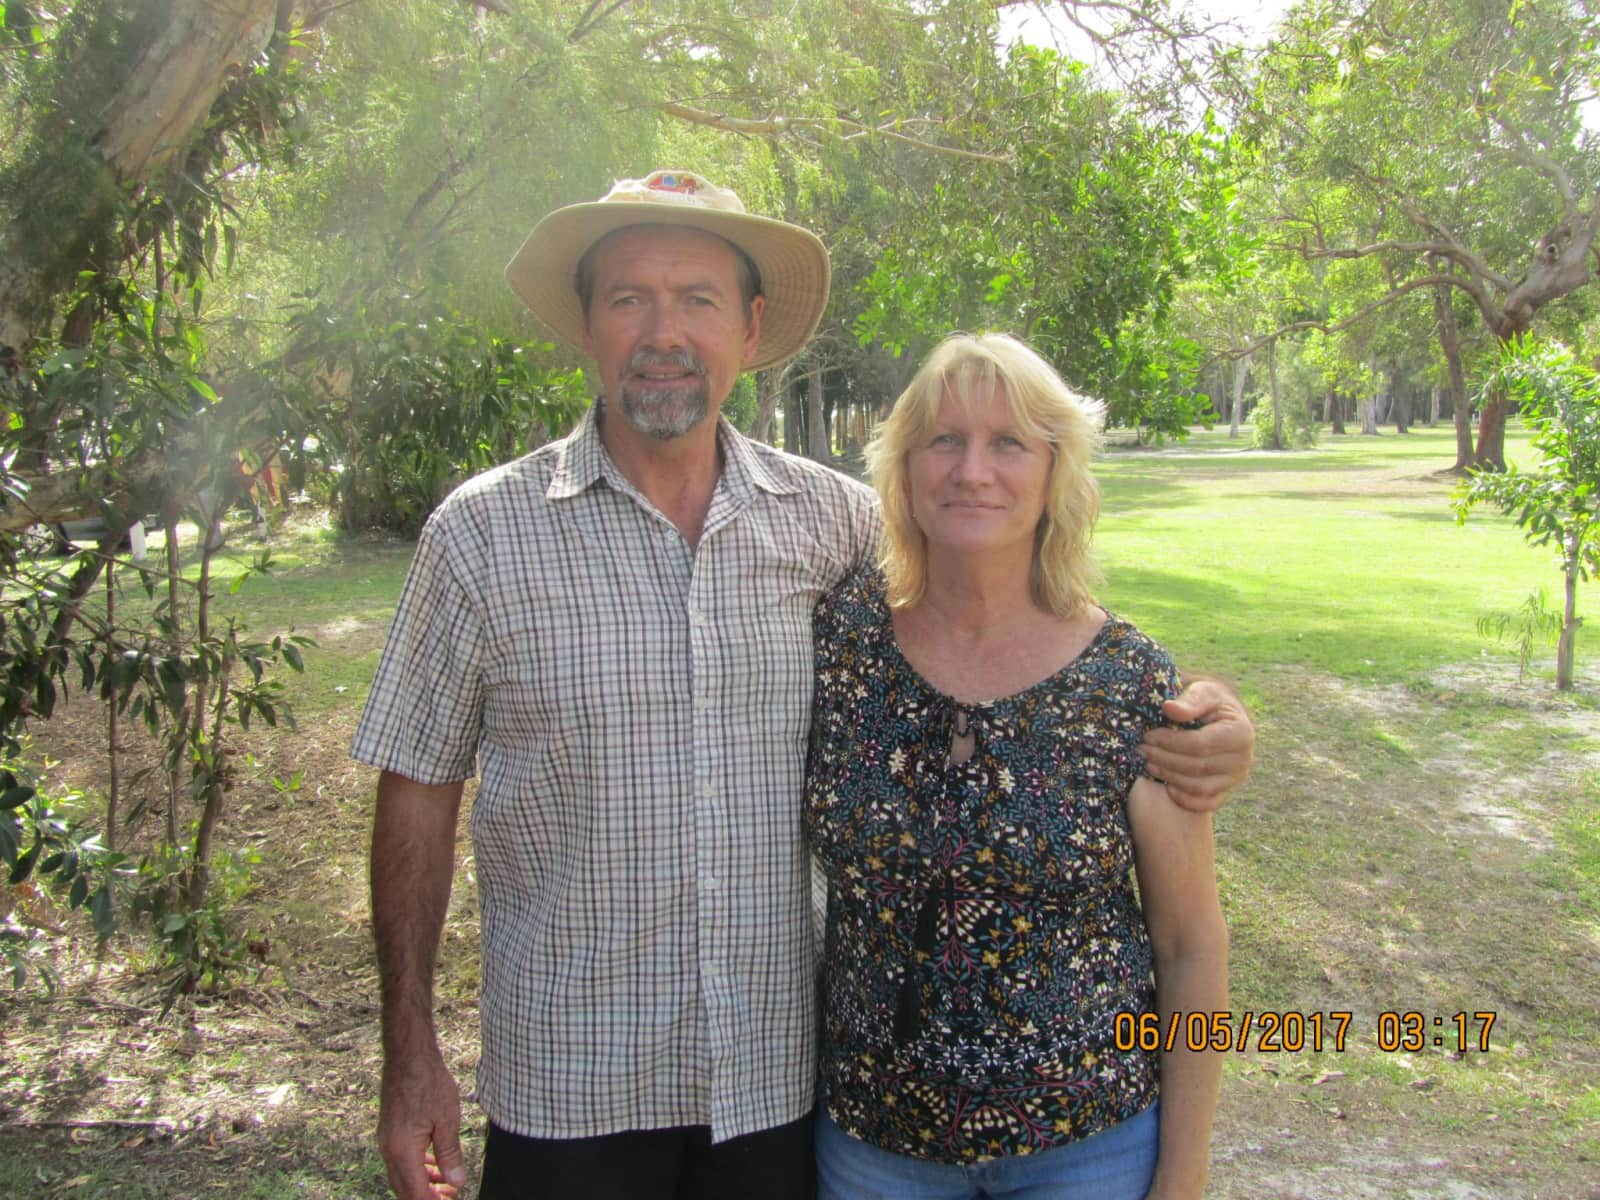 Sharen & Glen from Gympie, Queensland, Australia